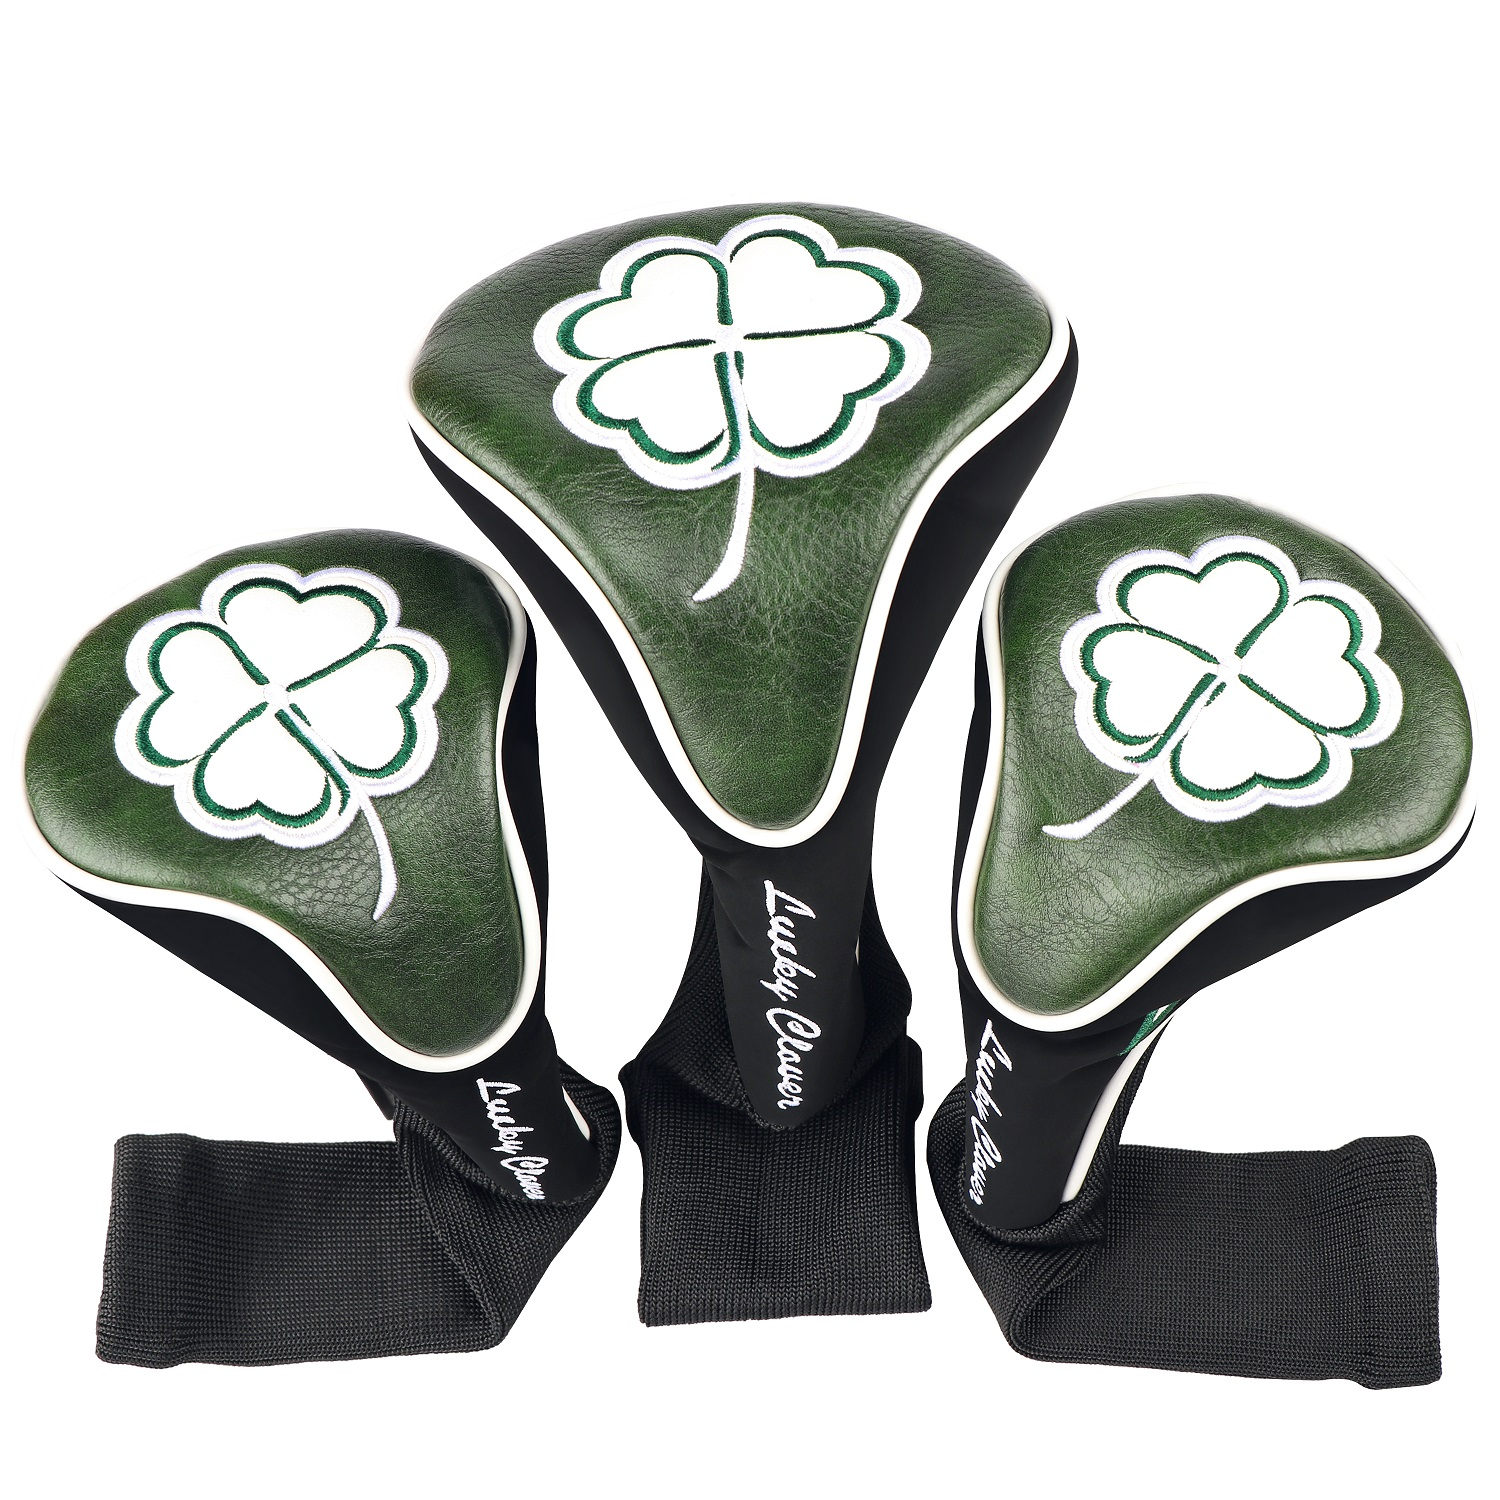 Champkey Golf Woods Head Covers Set